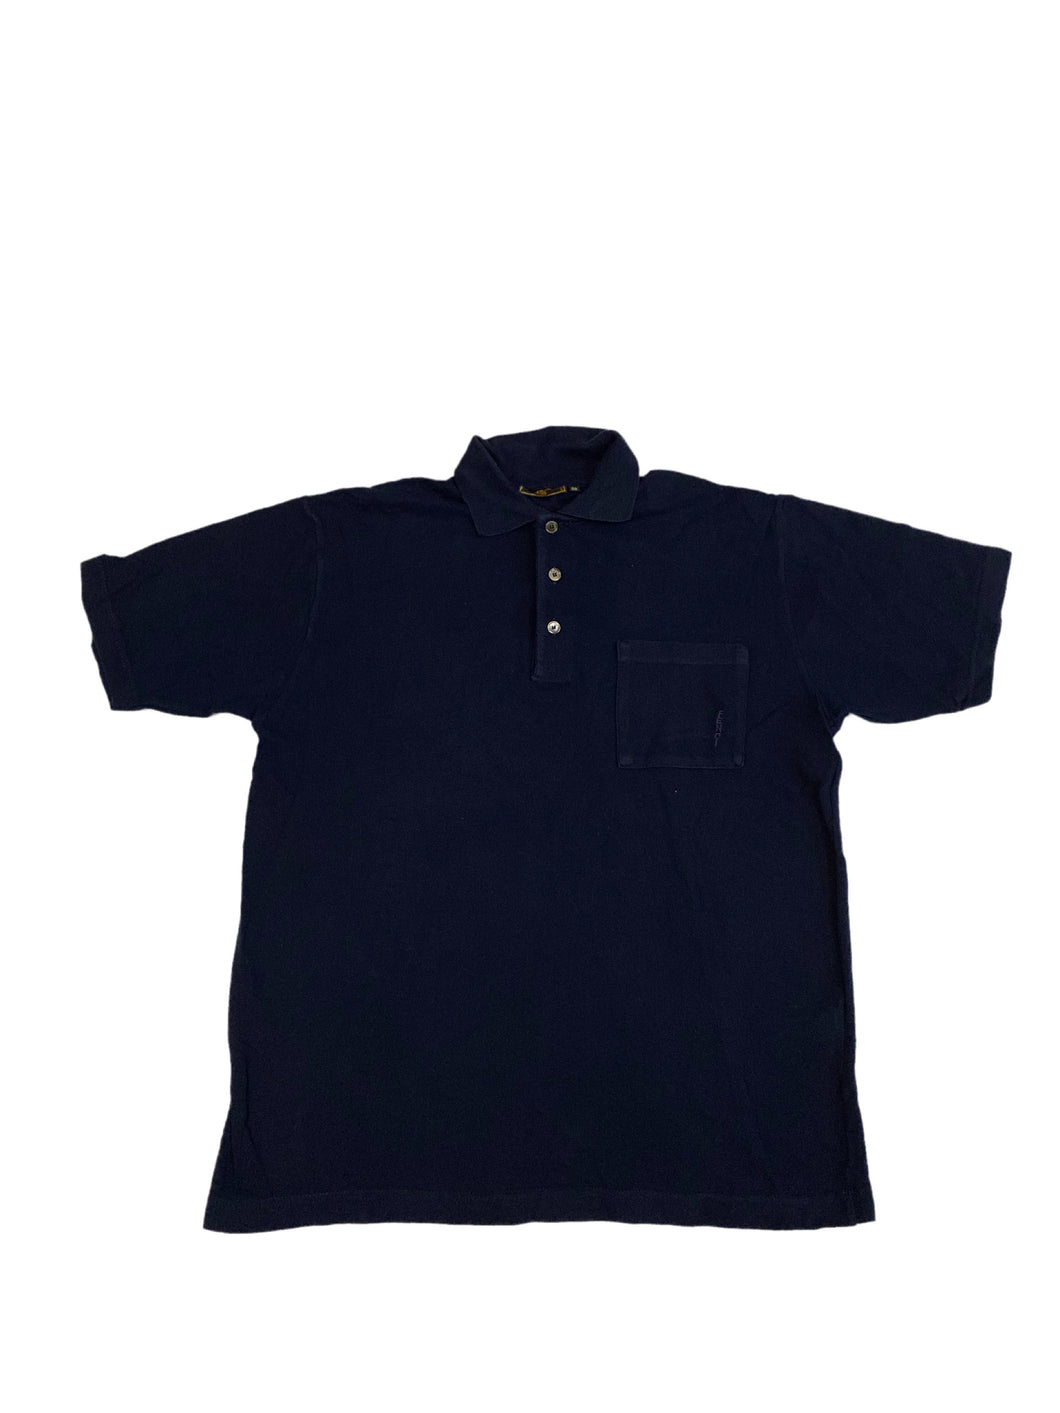 Fendi Navy Pocket Polo